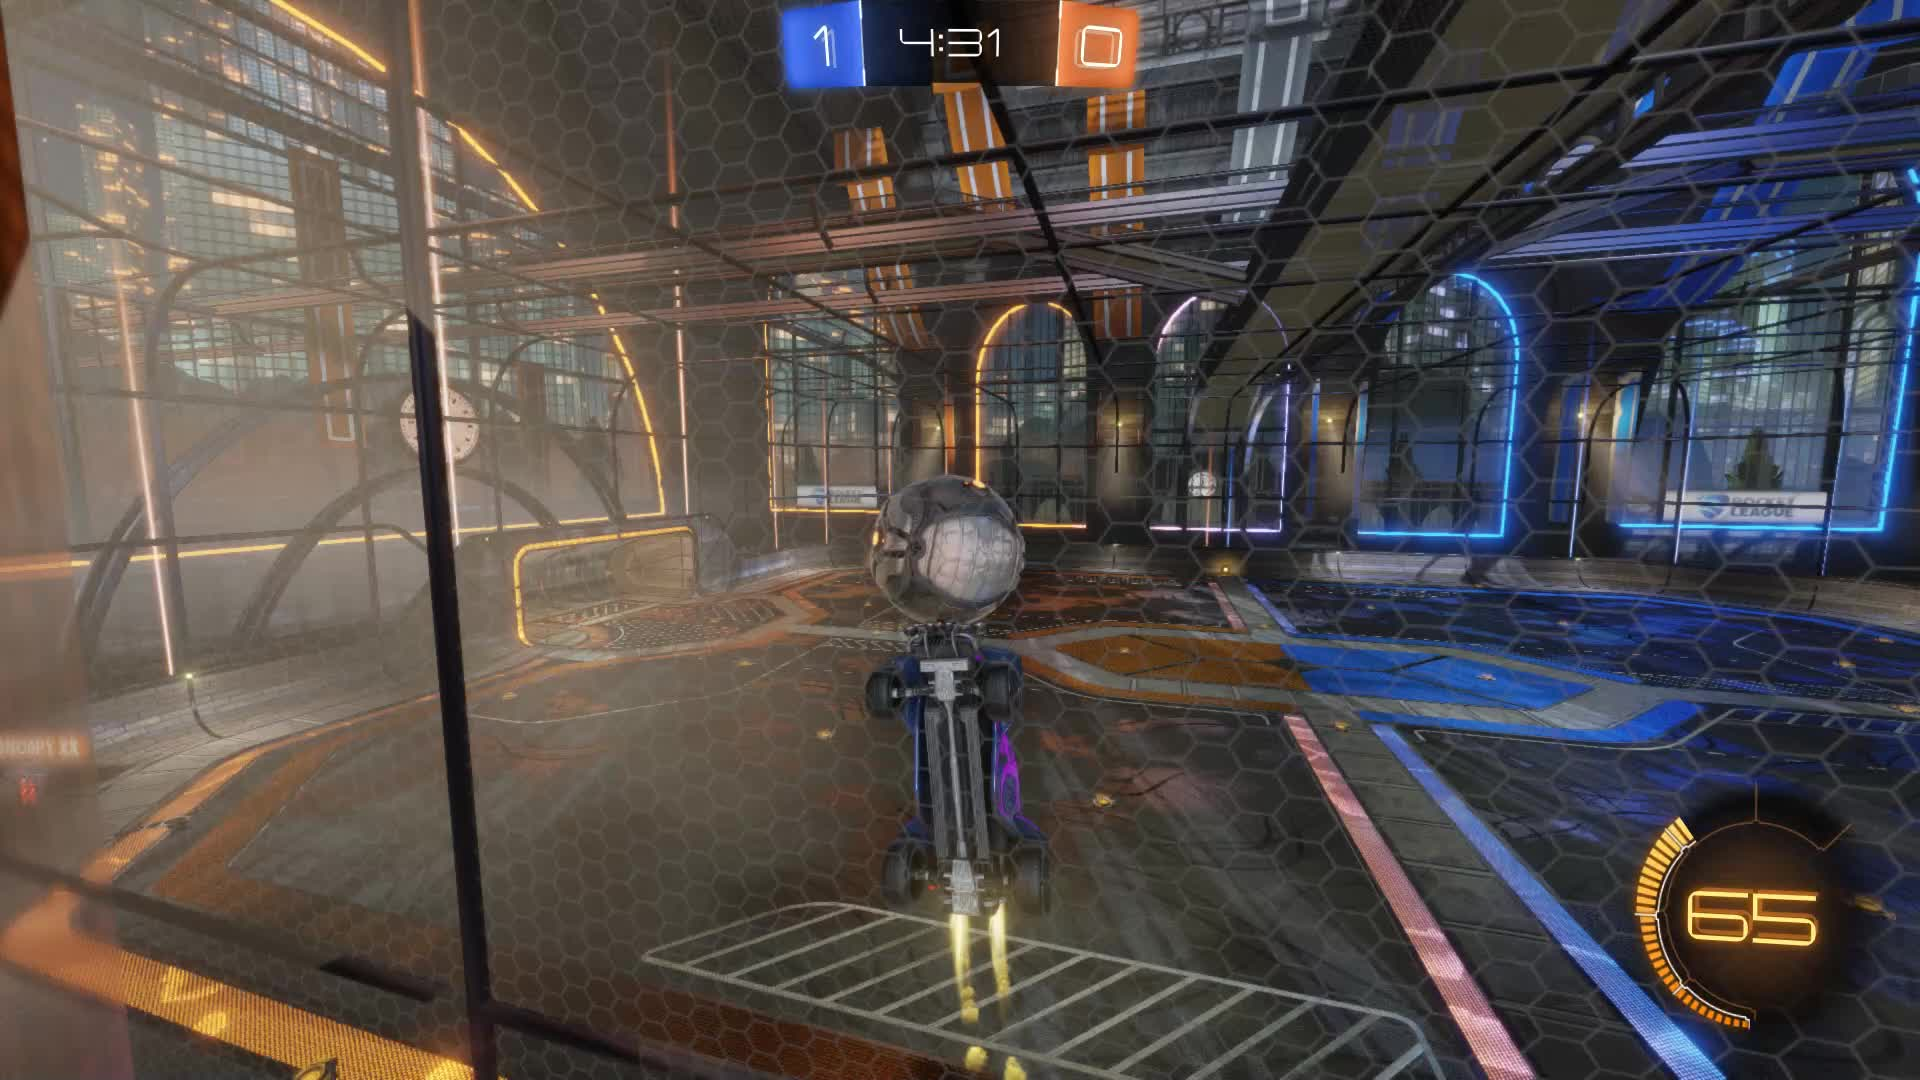 Gif Your Game, GifYourGame, Goal, JAG | Purple, Rocket League, RocketLeague, Goal 2: JAG | Purple GIFs